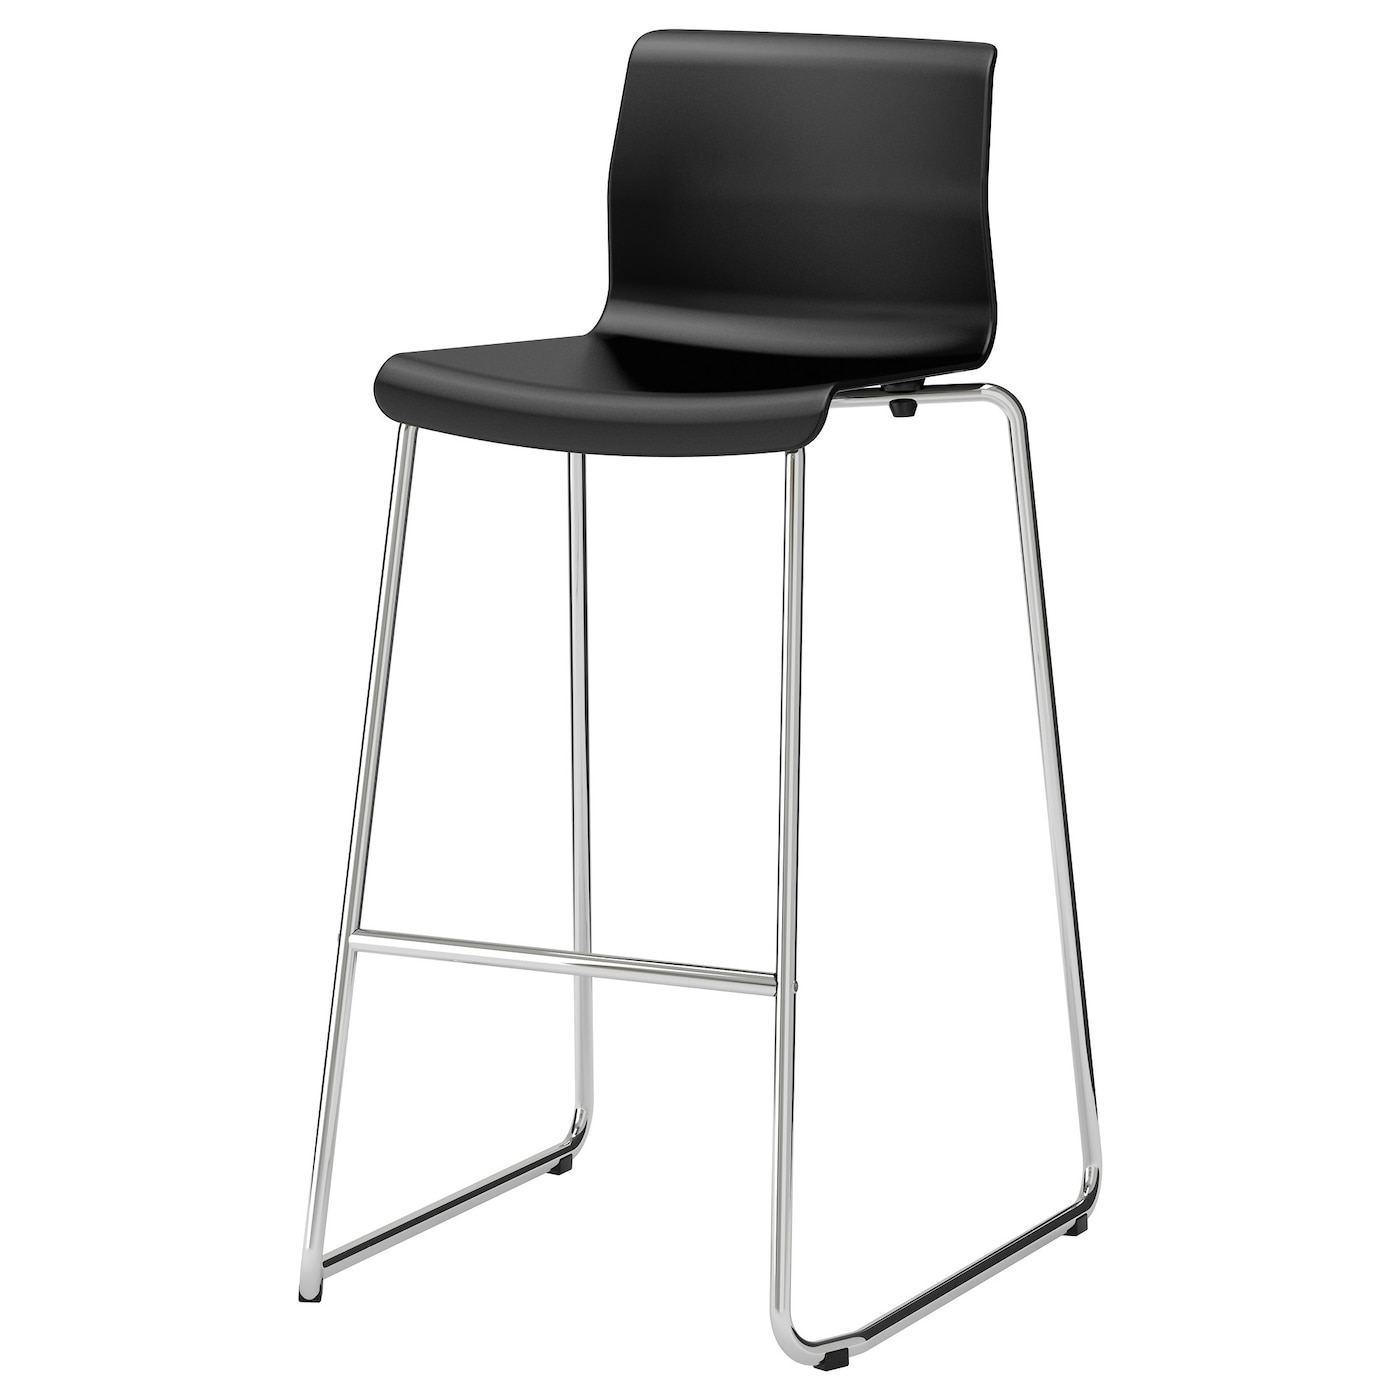 Ikea Glenn Bar Stool A Special Surface Treatment Makes The Seat Extra Scratch Resistant